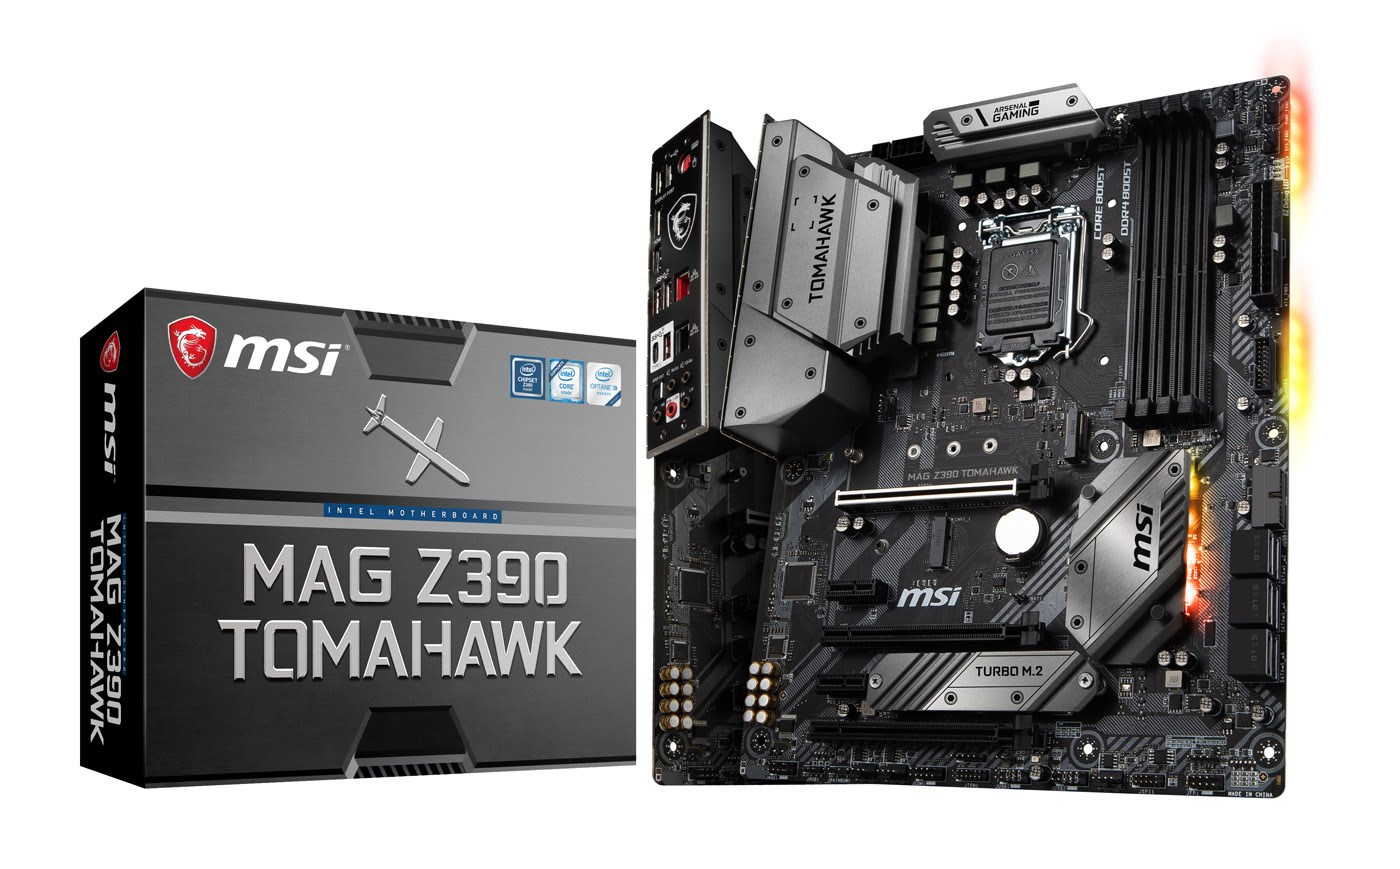 Elite Intel Core i7 Gamer Motherboard Bundle